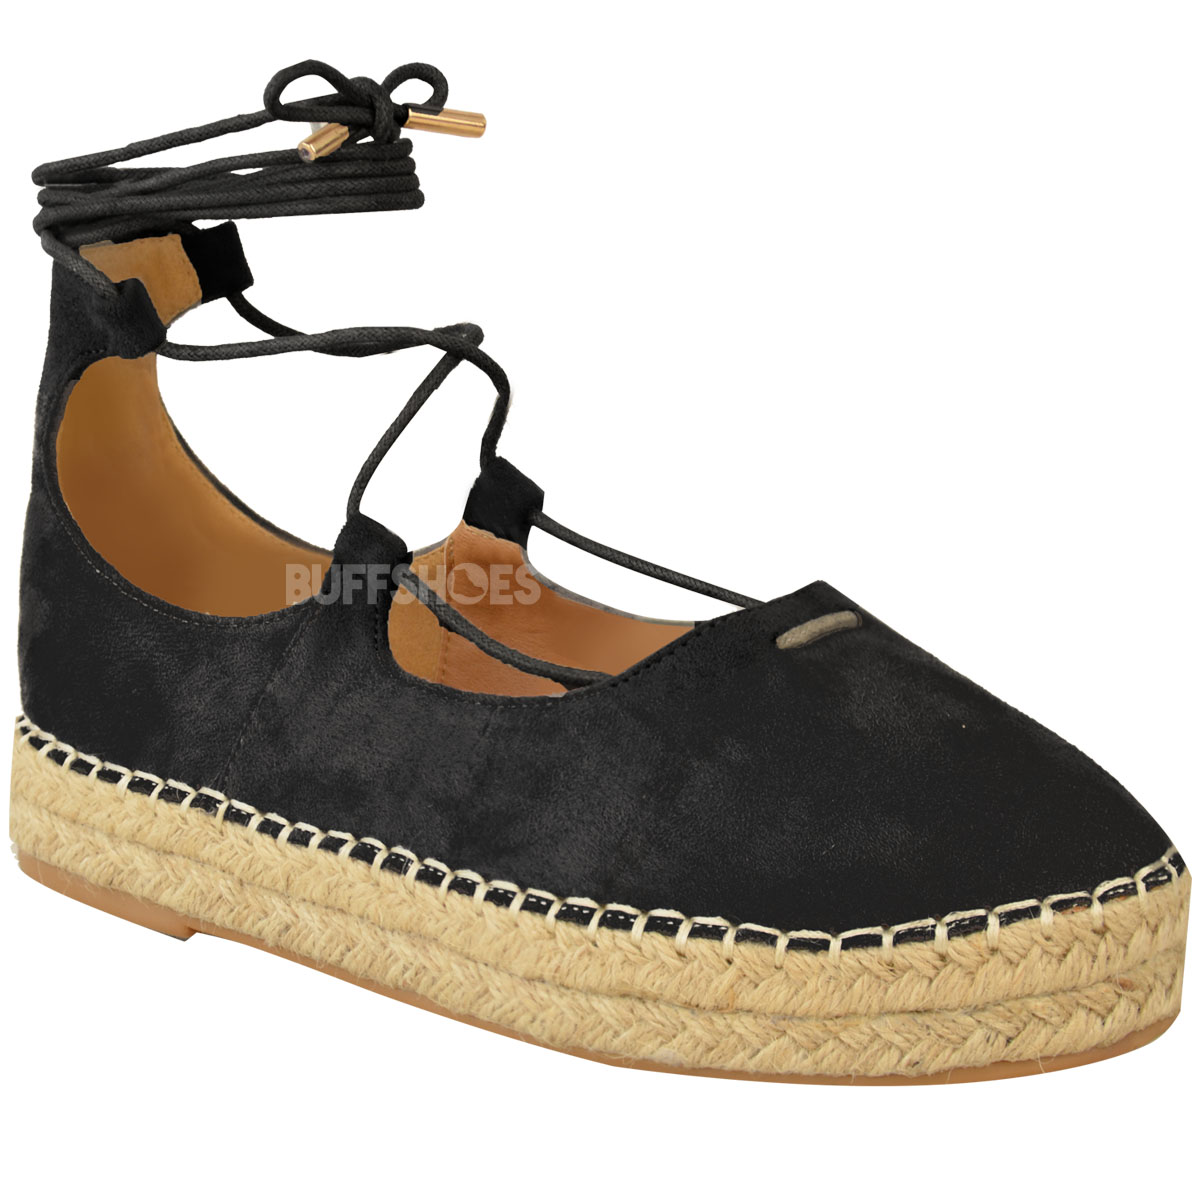 new womens ladies lace up strappy low flat canvas wedge espadrilles sandals size ebay. Black Bedroom Furniture Sets. Home Design Ideas